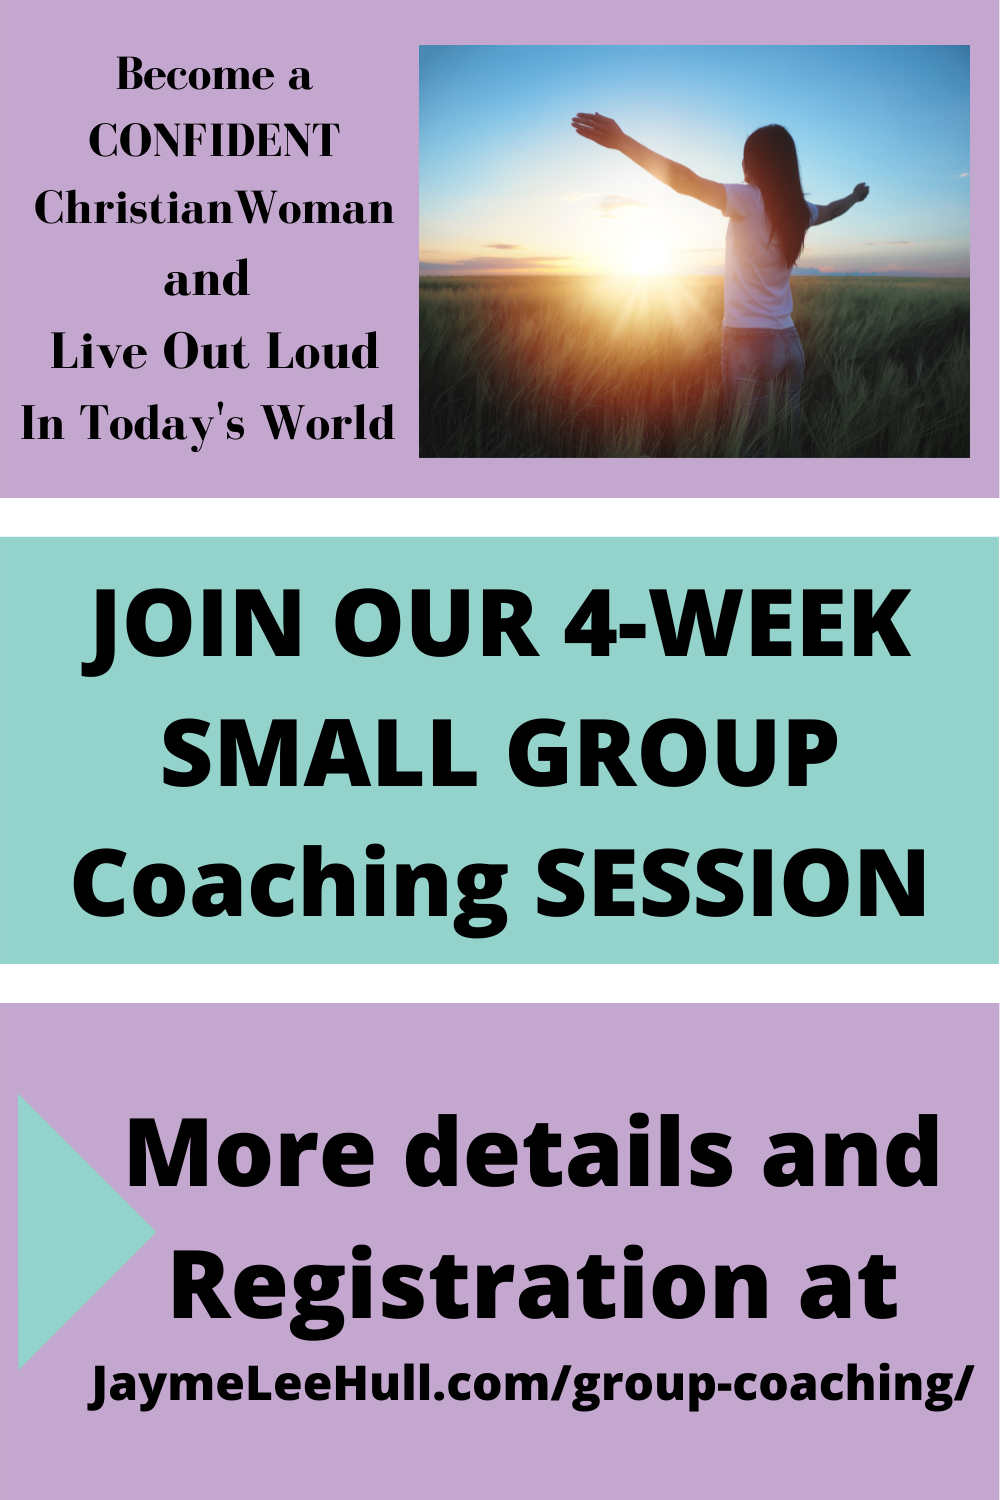 Group Coaching With Jayme Lee Hull PinIt, How do I start a group coaching program? What are the benefits of group coaching? coach groups, life coach, group coaching benefits, group coaching activities, group coaching vs individual coaching, group coaching topics, group coaching online, group coaching program, #JaymeLeeHull